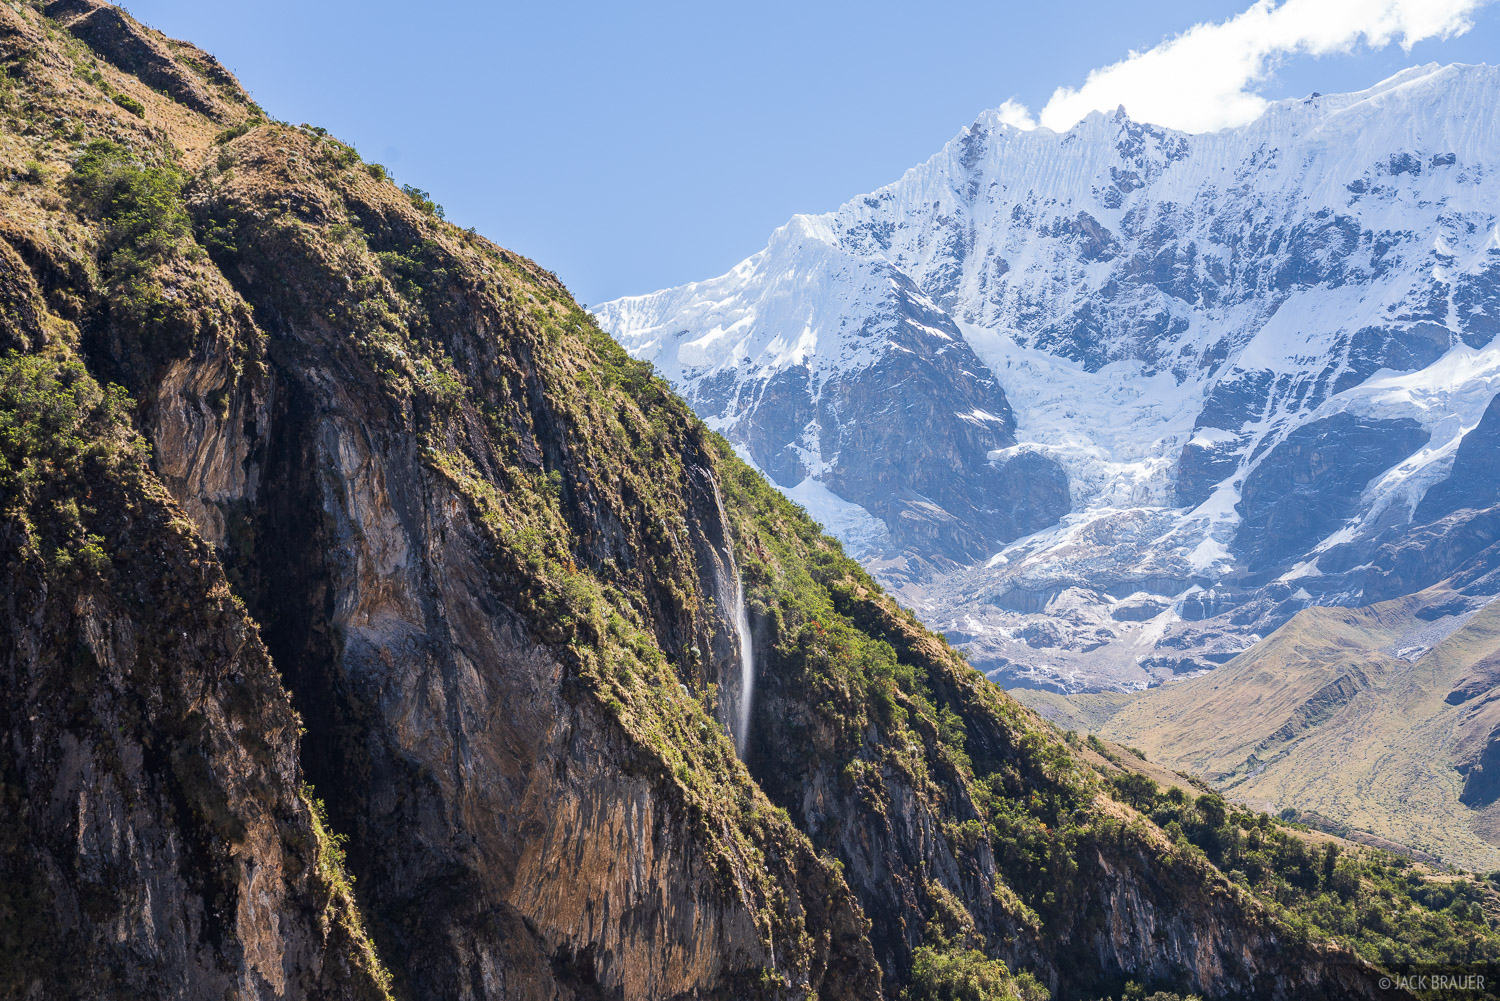 Cordillera Vilcabamba, Nevado Tucarhuay, Peru, South America, waterfall, photo